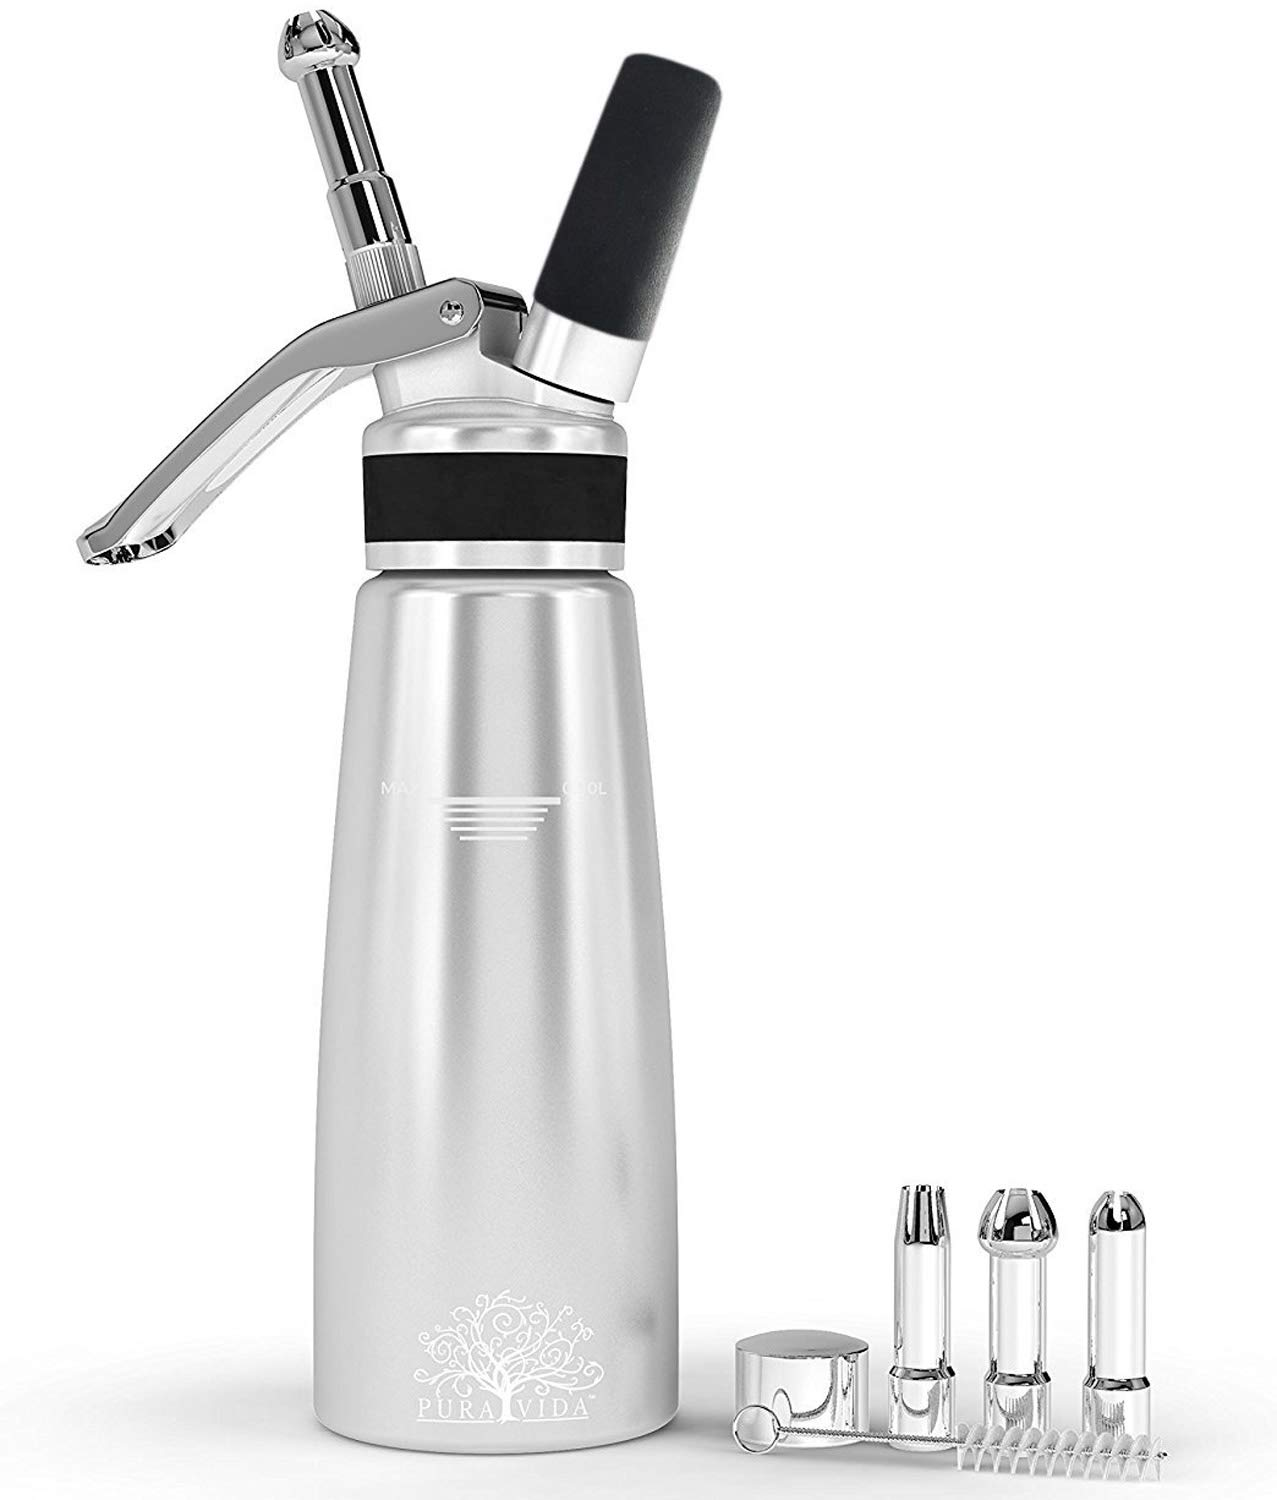 Pura Vida Professional Whipped Cream Dispenser Stainless Steel Decorating Tips – Durable Aluminum Whipped Cream Canister - Perfect Cream Whipper Maker for Gift, Dishwasher Safe Whip Cream Dispensers